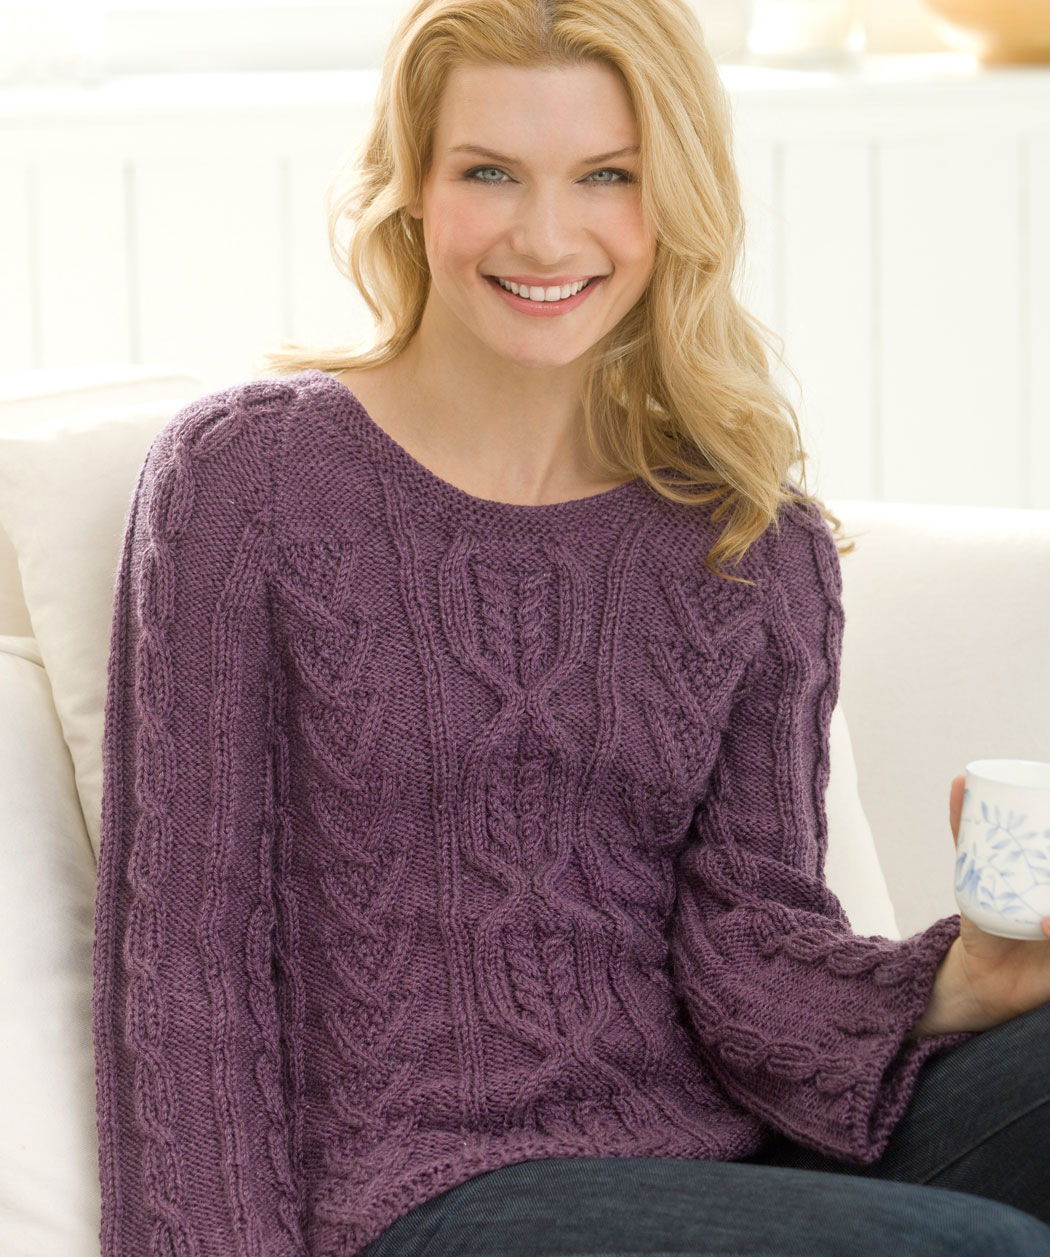 Free Knitting Patterns Bags : Cable Knit Sweater Patterns A Knitting Blog